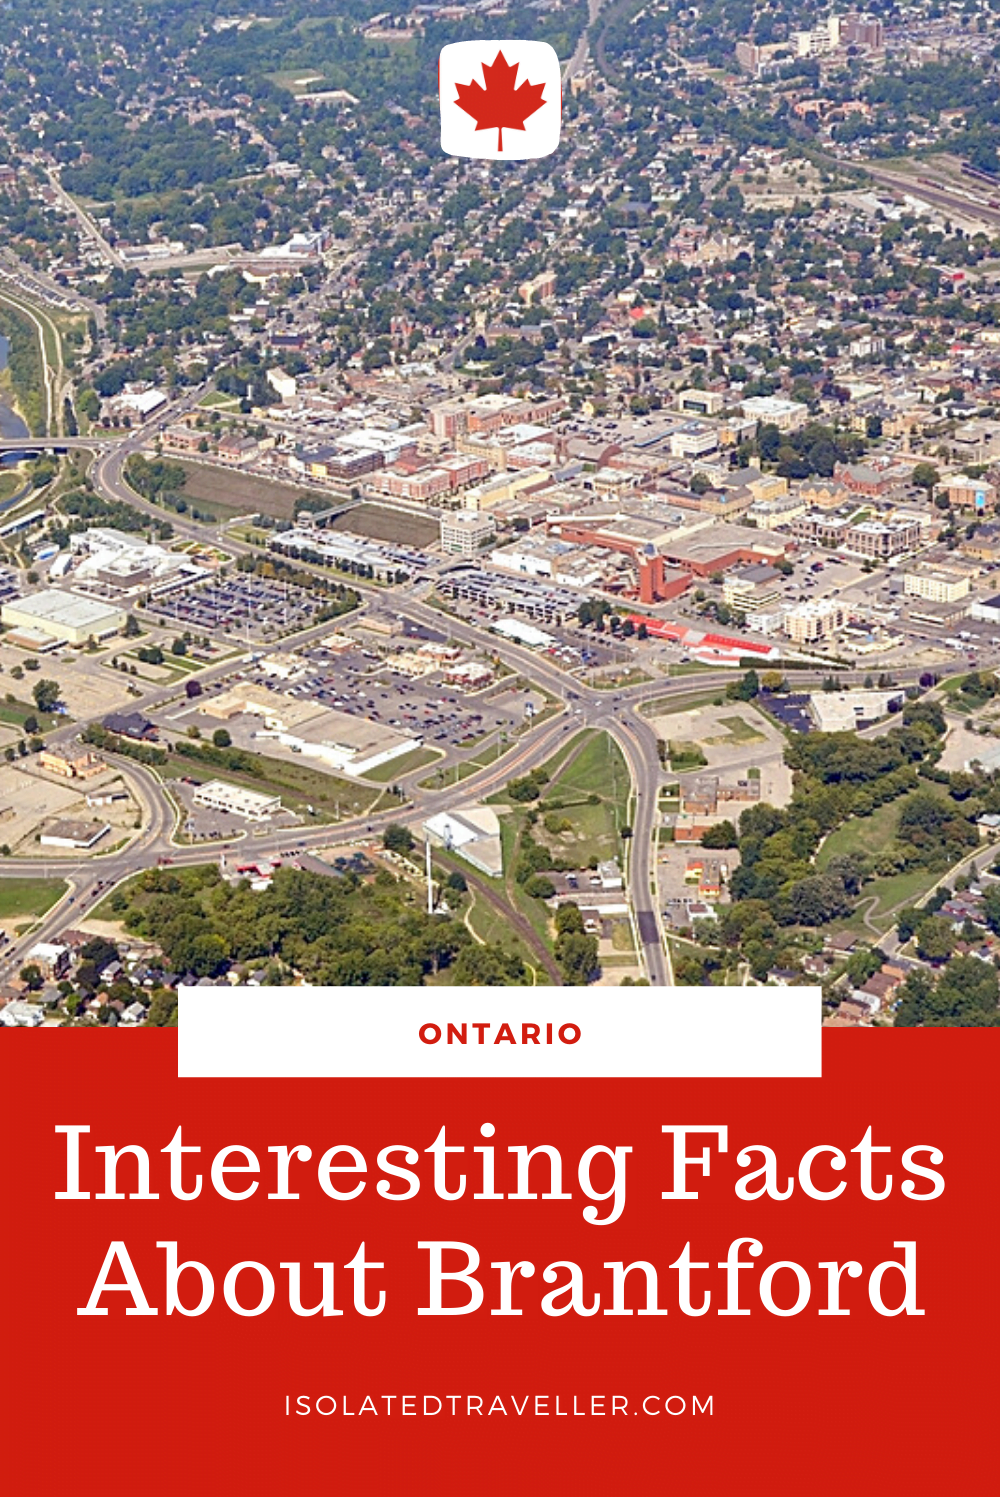 Facts About Brantford